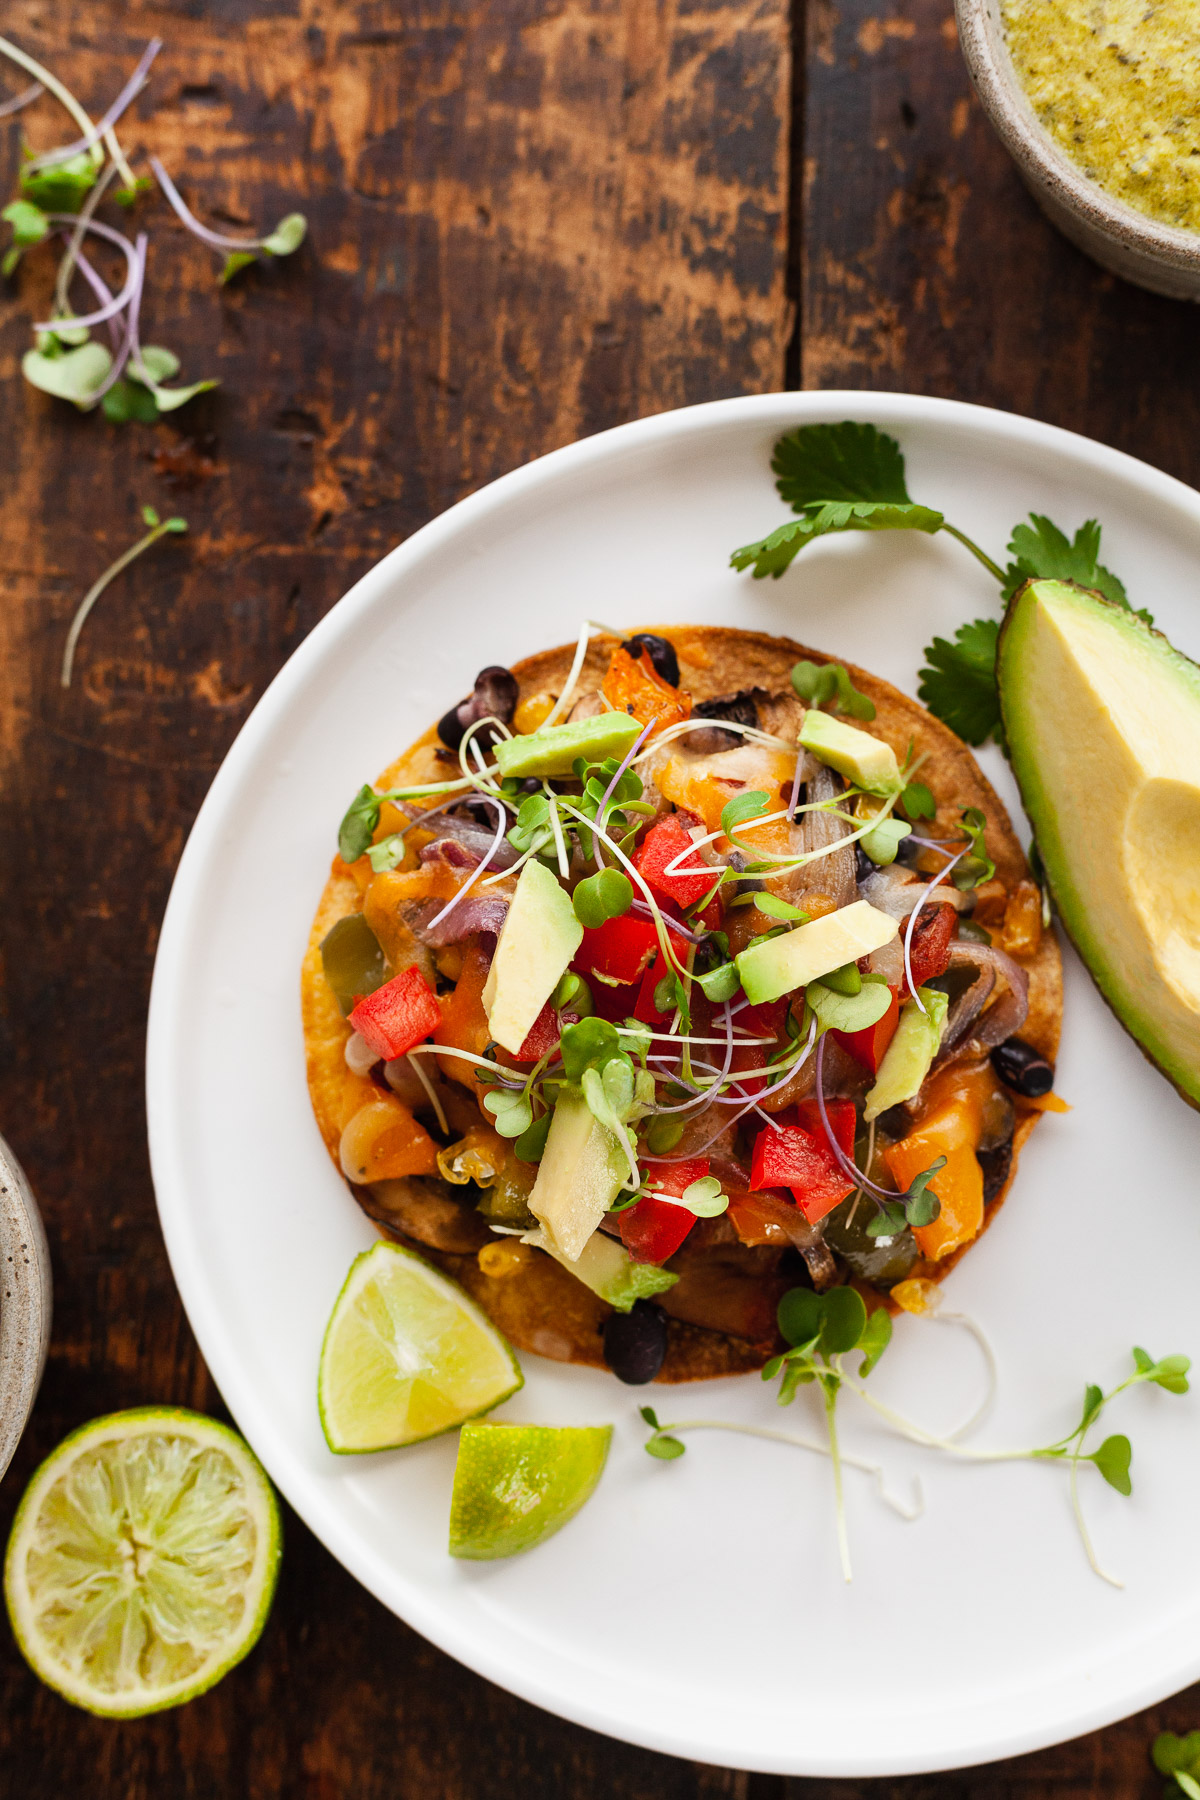 image of roasted veggie tostada on white plate with avocado and limes on wooden table